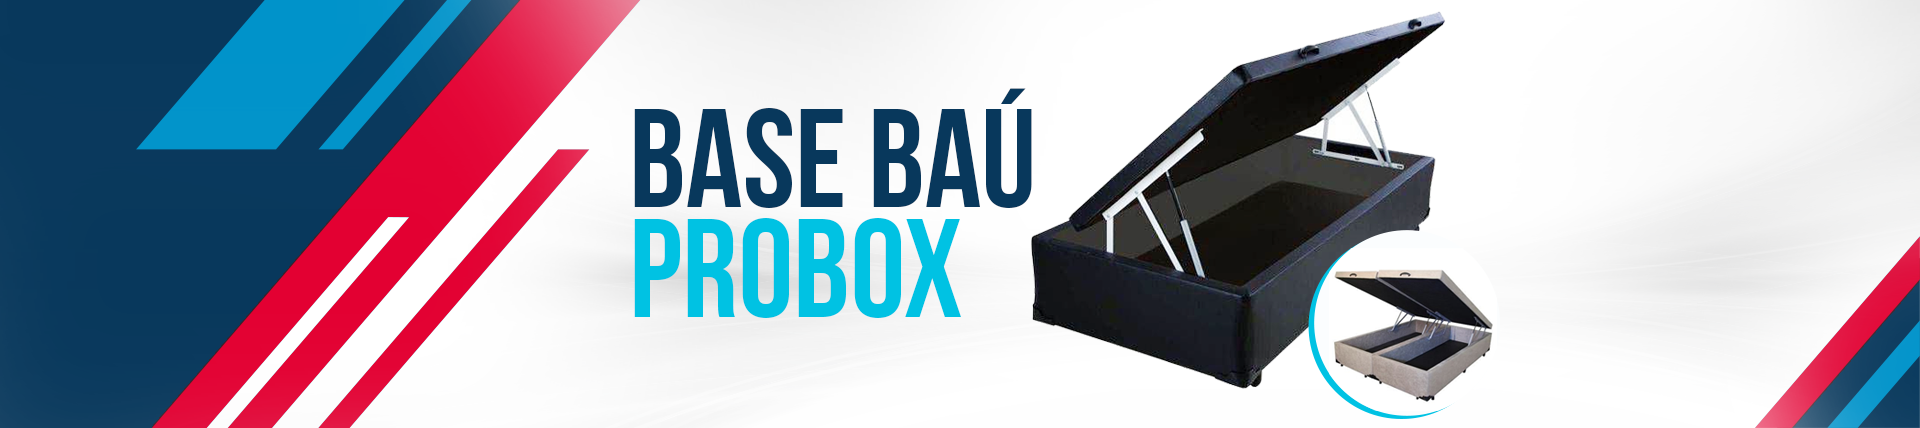 Base Baú Probox